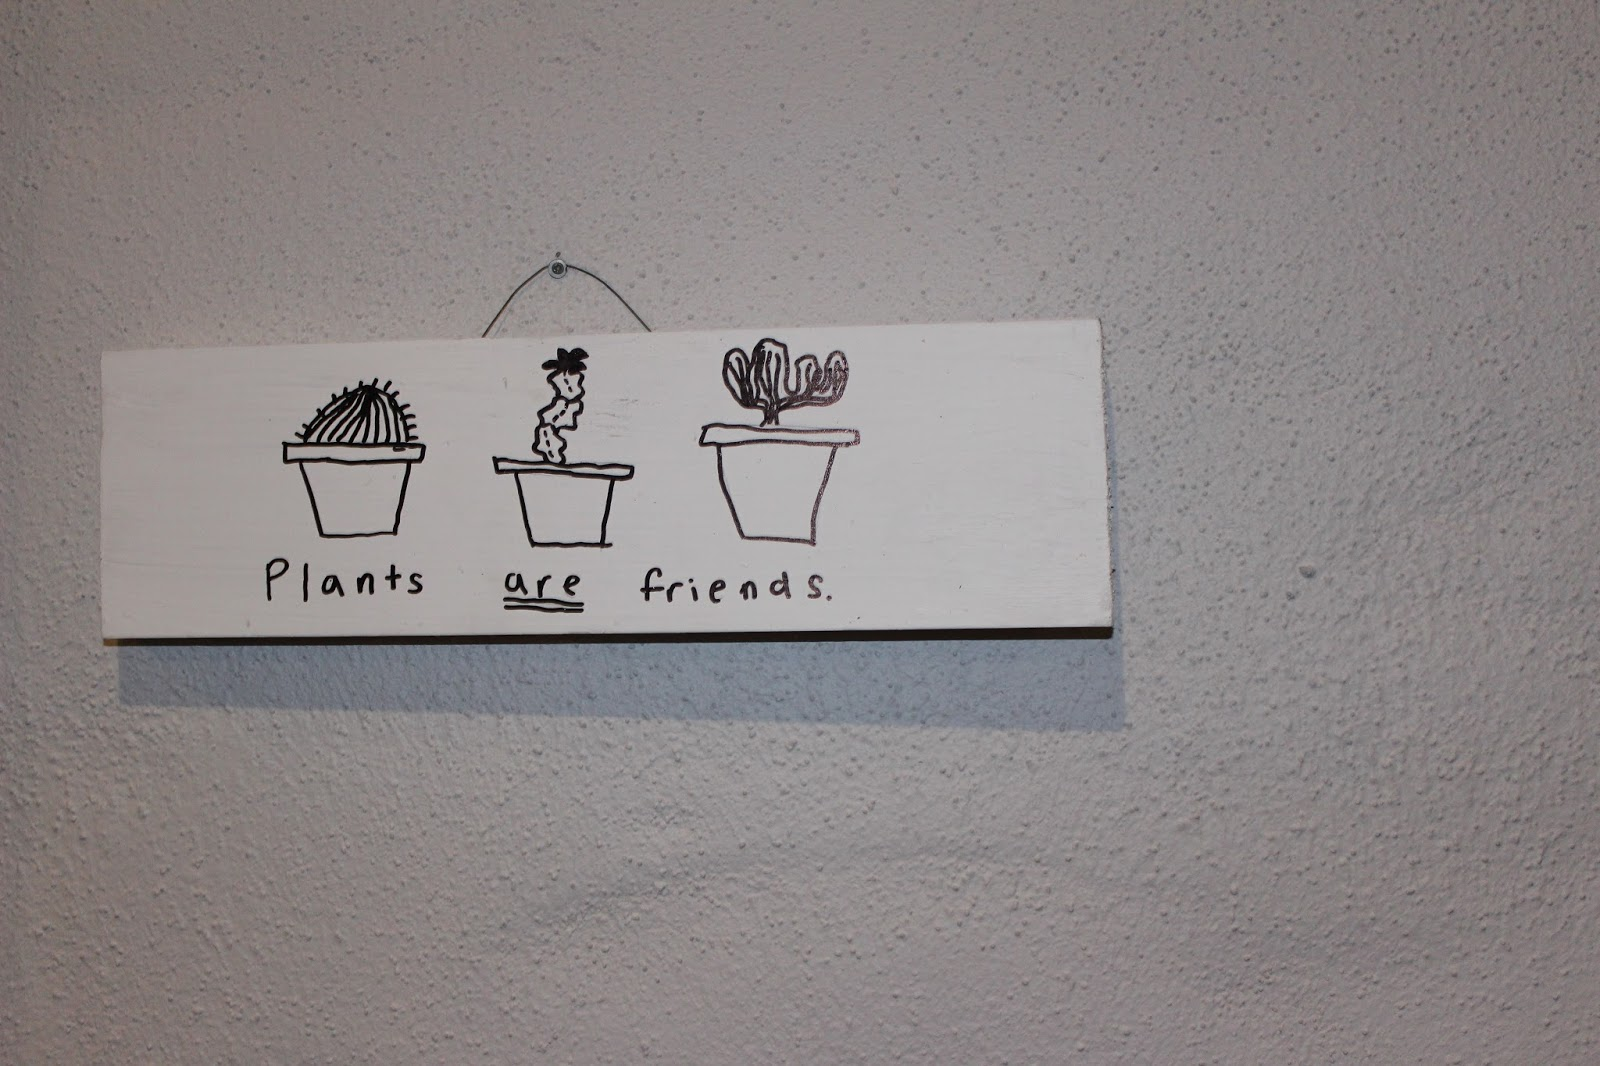 Plants are friends photos signs and shirts with it on are all over tumblr and i thought that it looked really cool and would be fun to try out